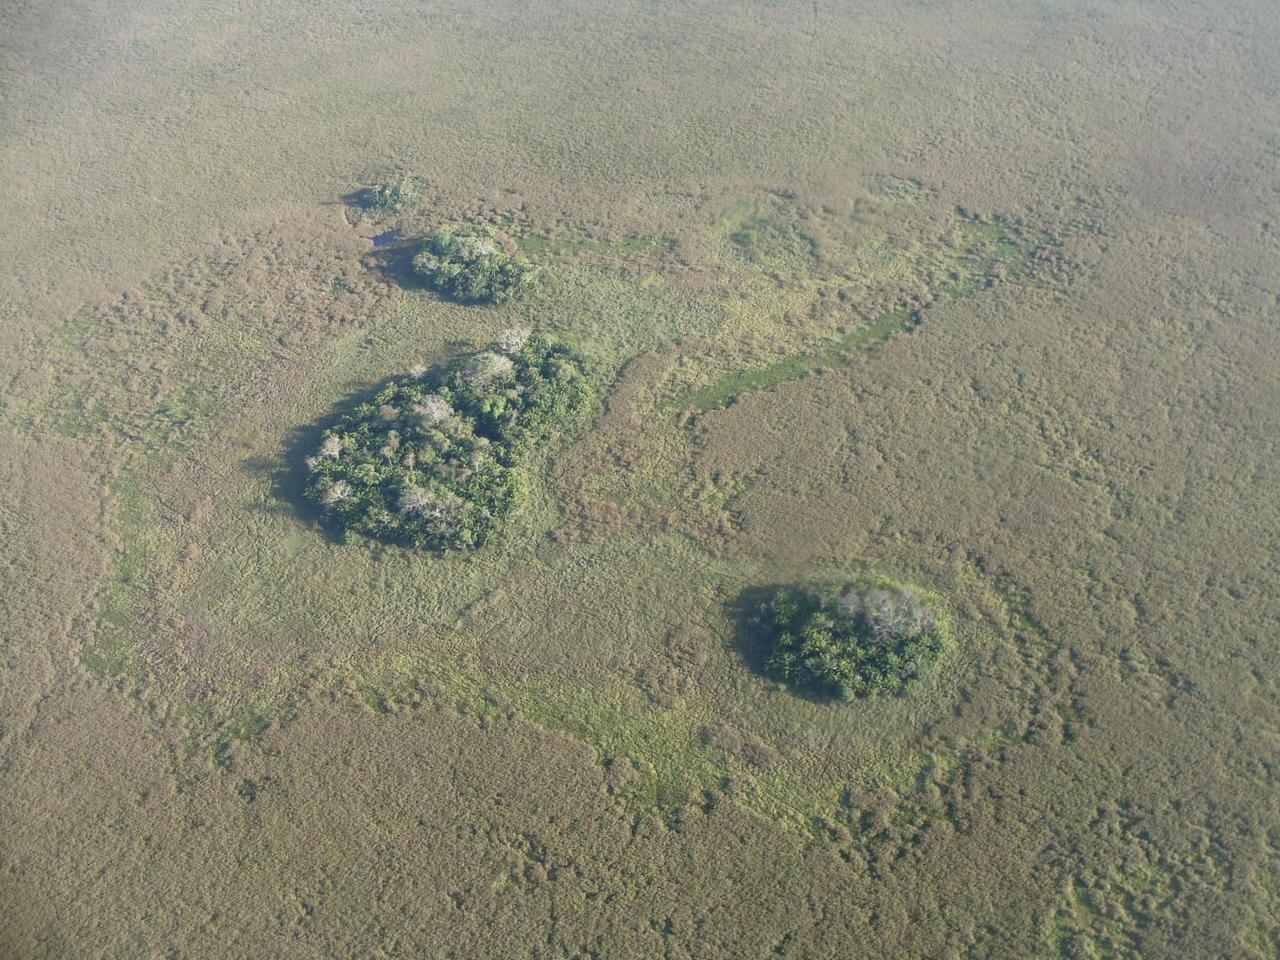 An aerial view of three of the forest islands